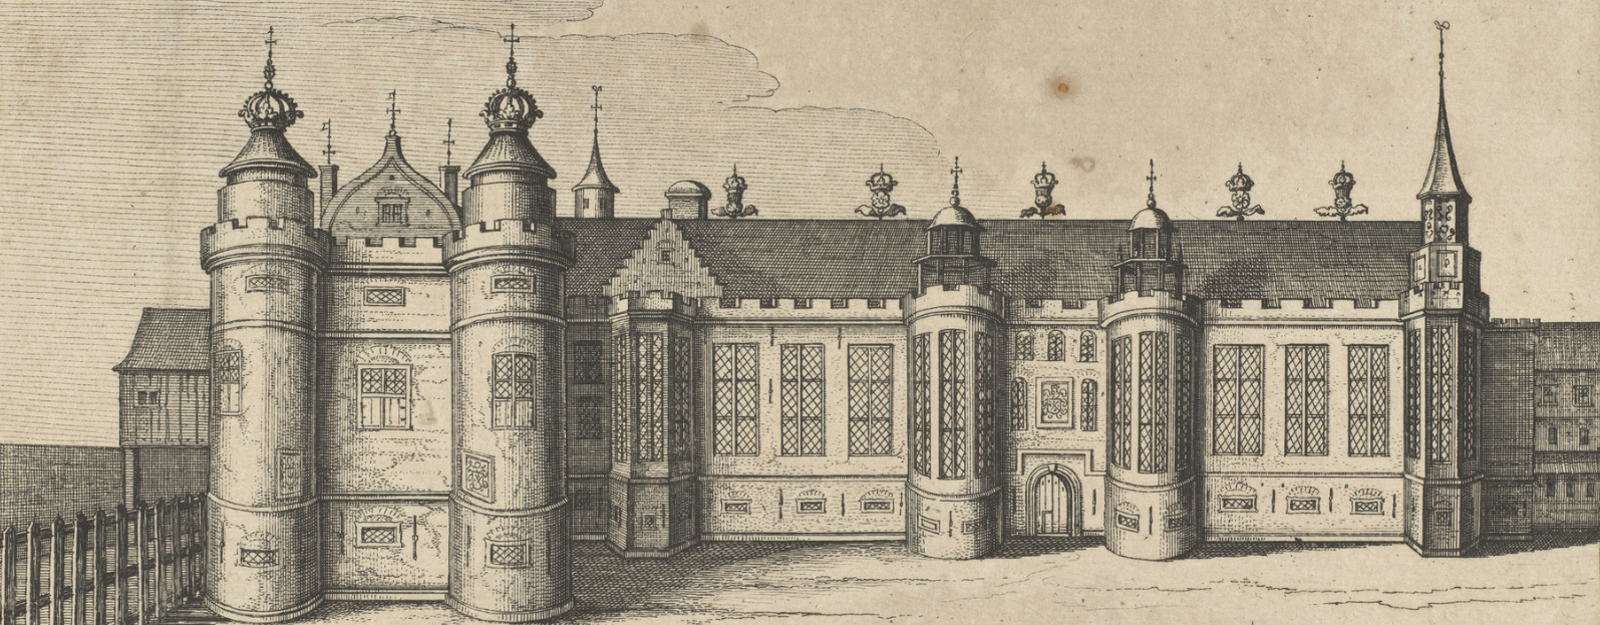 Engraving of James V's palace